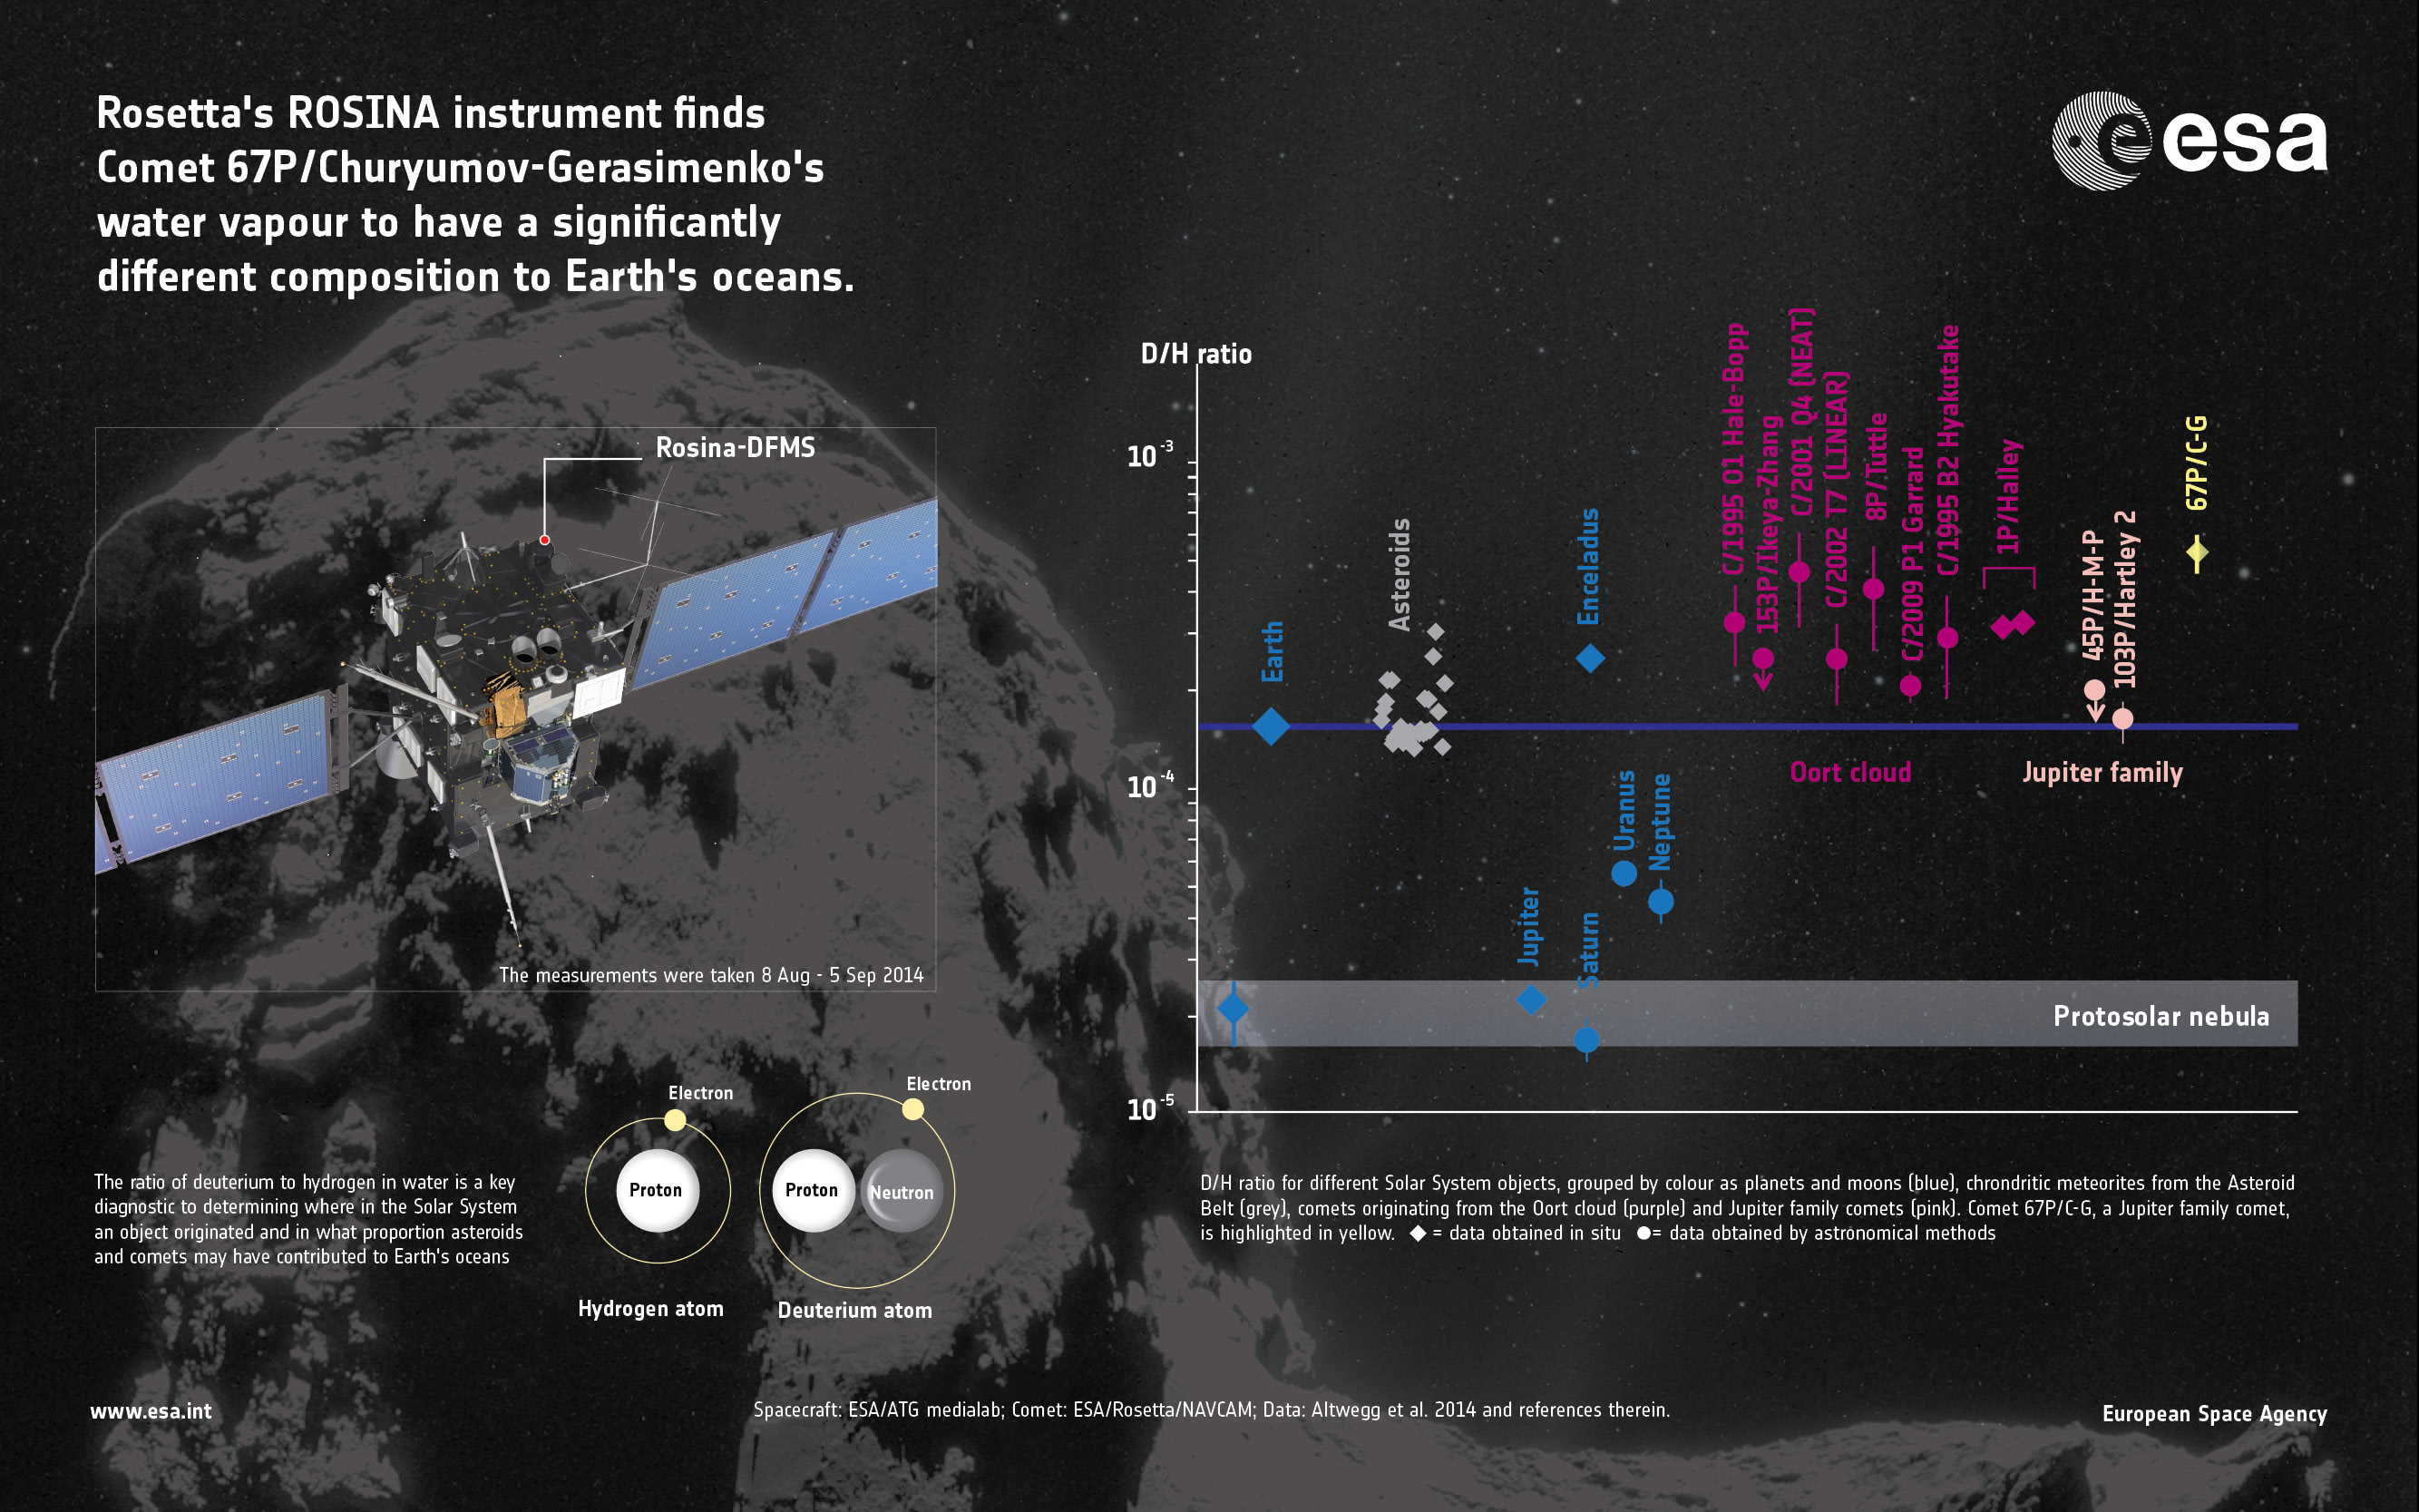 [Sujet unique] 2014: Philae: le robot de la sonde Rosetta sur la comète Tchourioumov-Guérassimenko - Page 5 First_measurements_of_comet_s_water_ratio